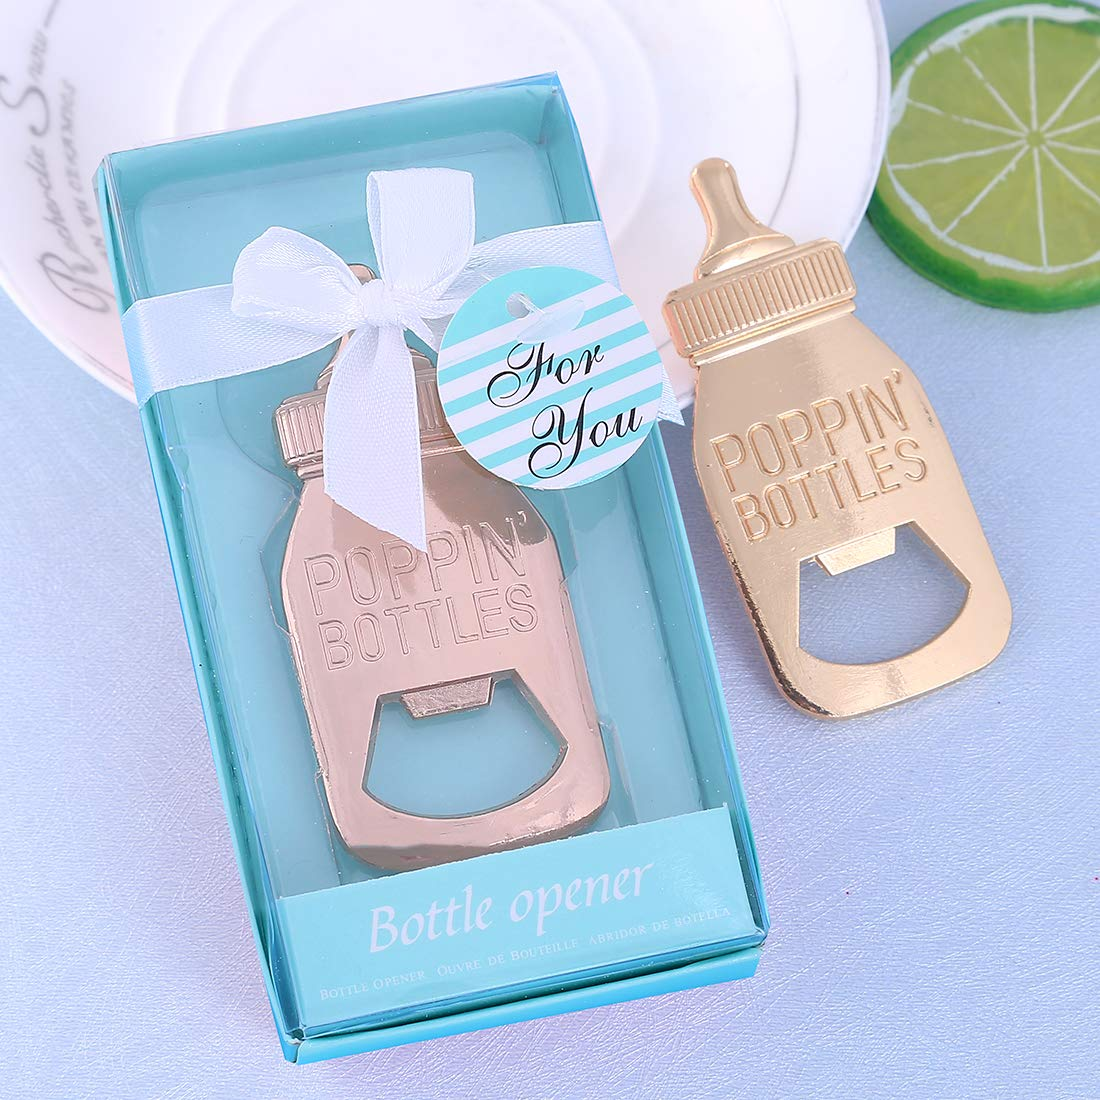 Yuokwer 24pcs Bottle Opener Baby Shower Favor for Guest,Rose Gold Feeding Bottle Opener Wedding Favors Baby Shower Giveaways Gift to Guest, Party Favors Gift & Party Decorations Supplies (Blue, 24) by Yuokwer